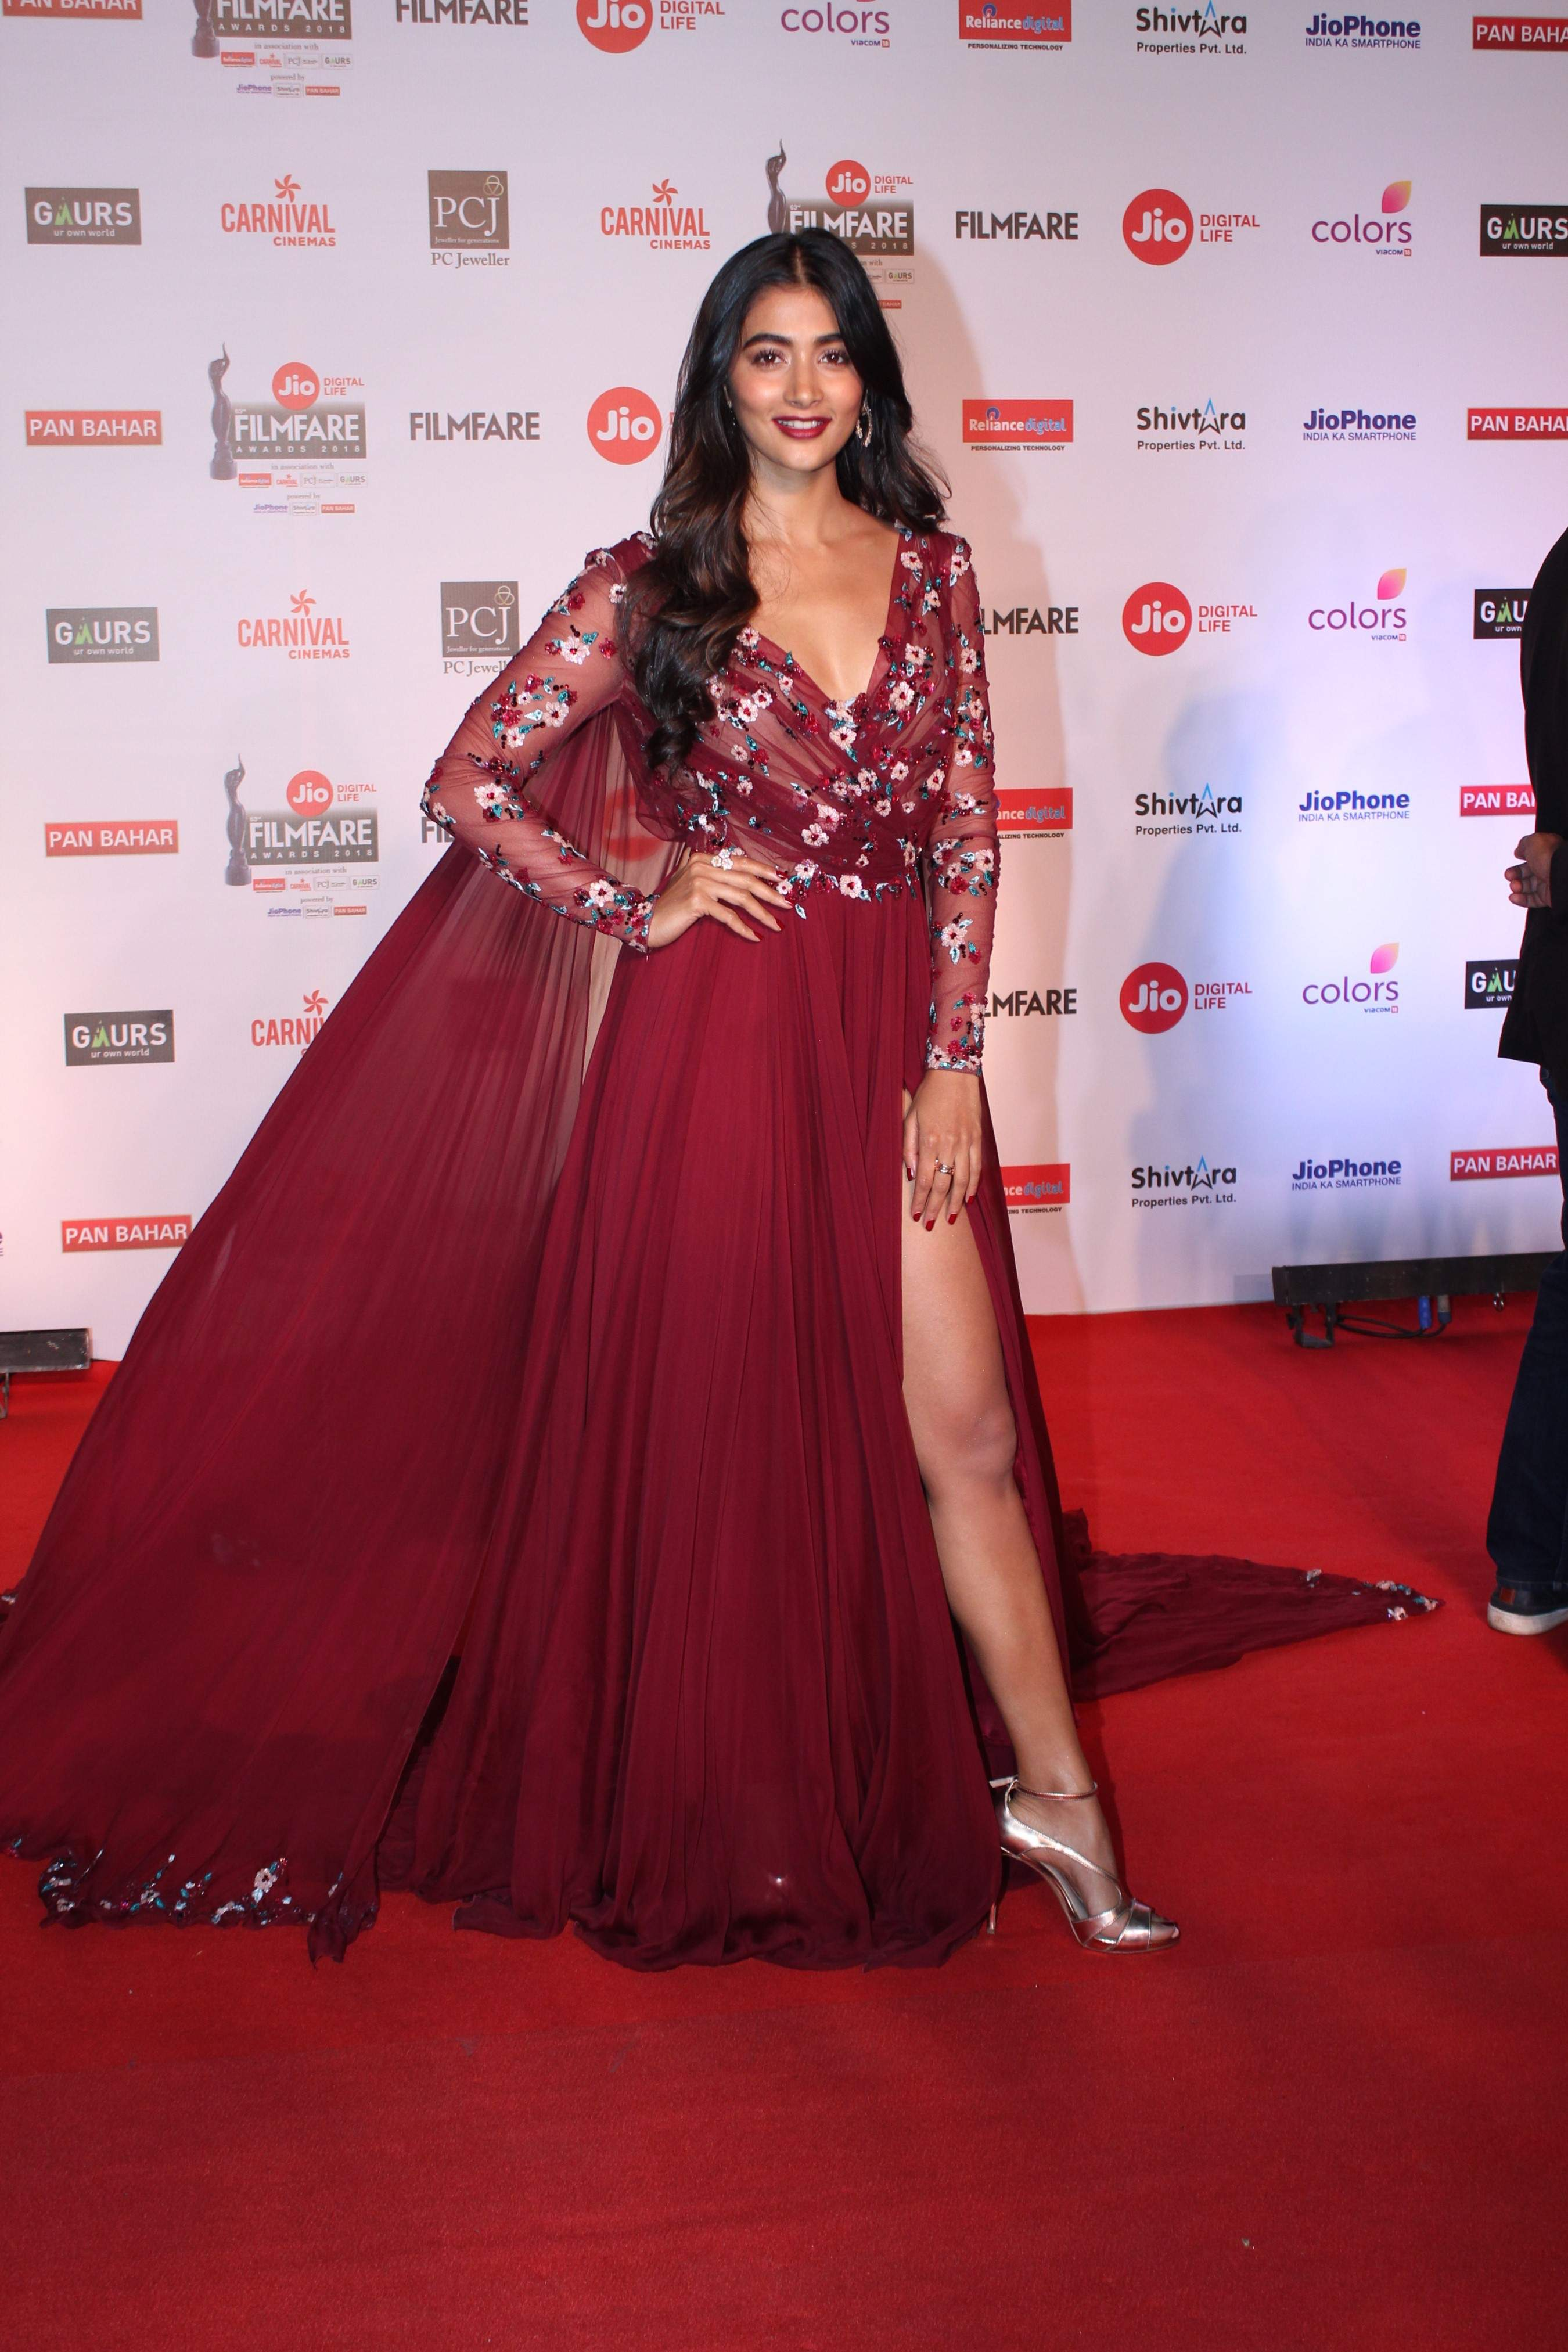 who wore what at the filmfare awards